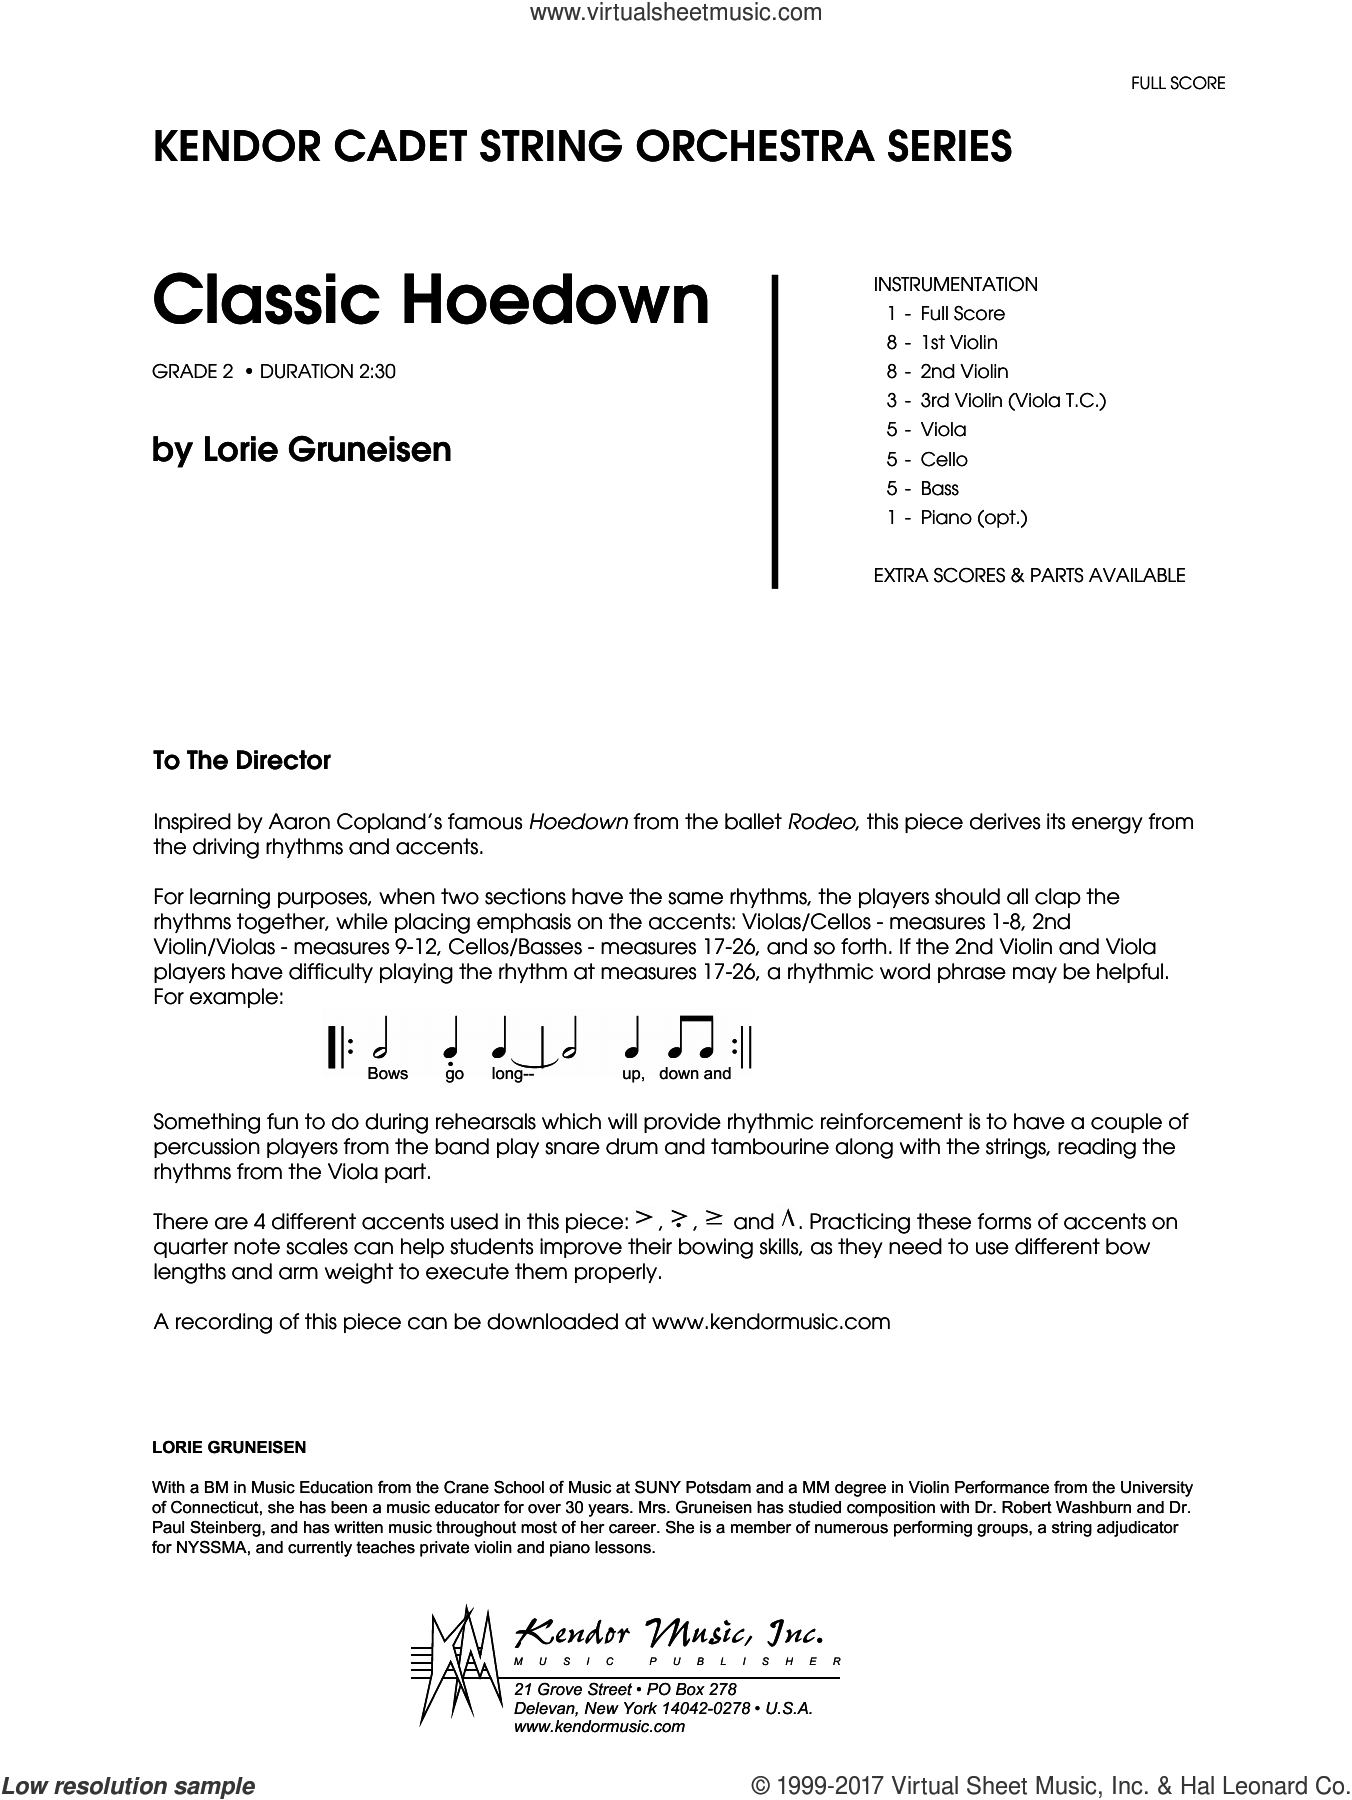 Classic Hoedown (COMPLETE) sheet music for orchestra by Lorie Gruneisen, intermediate skill level